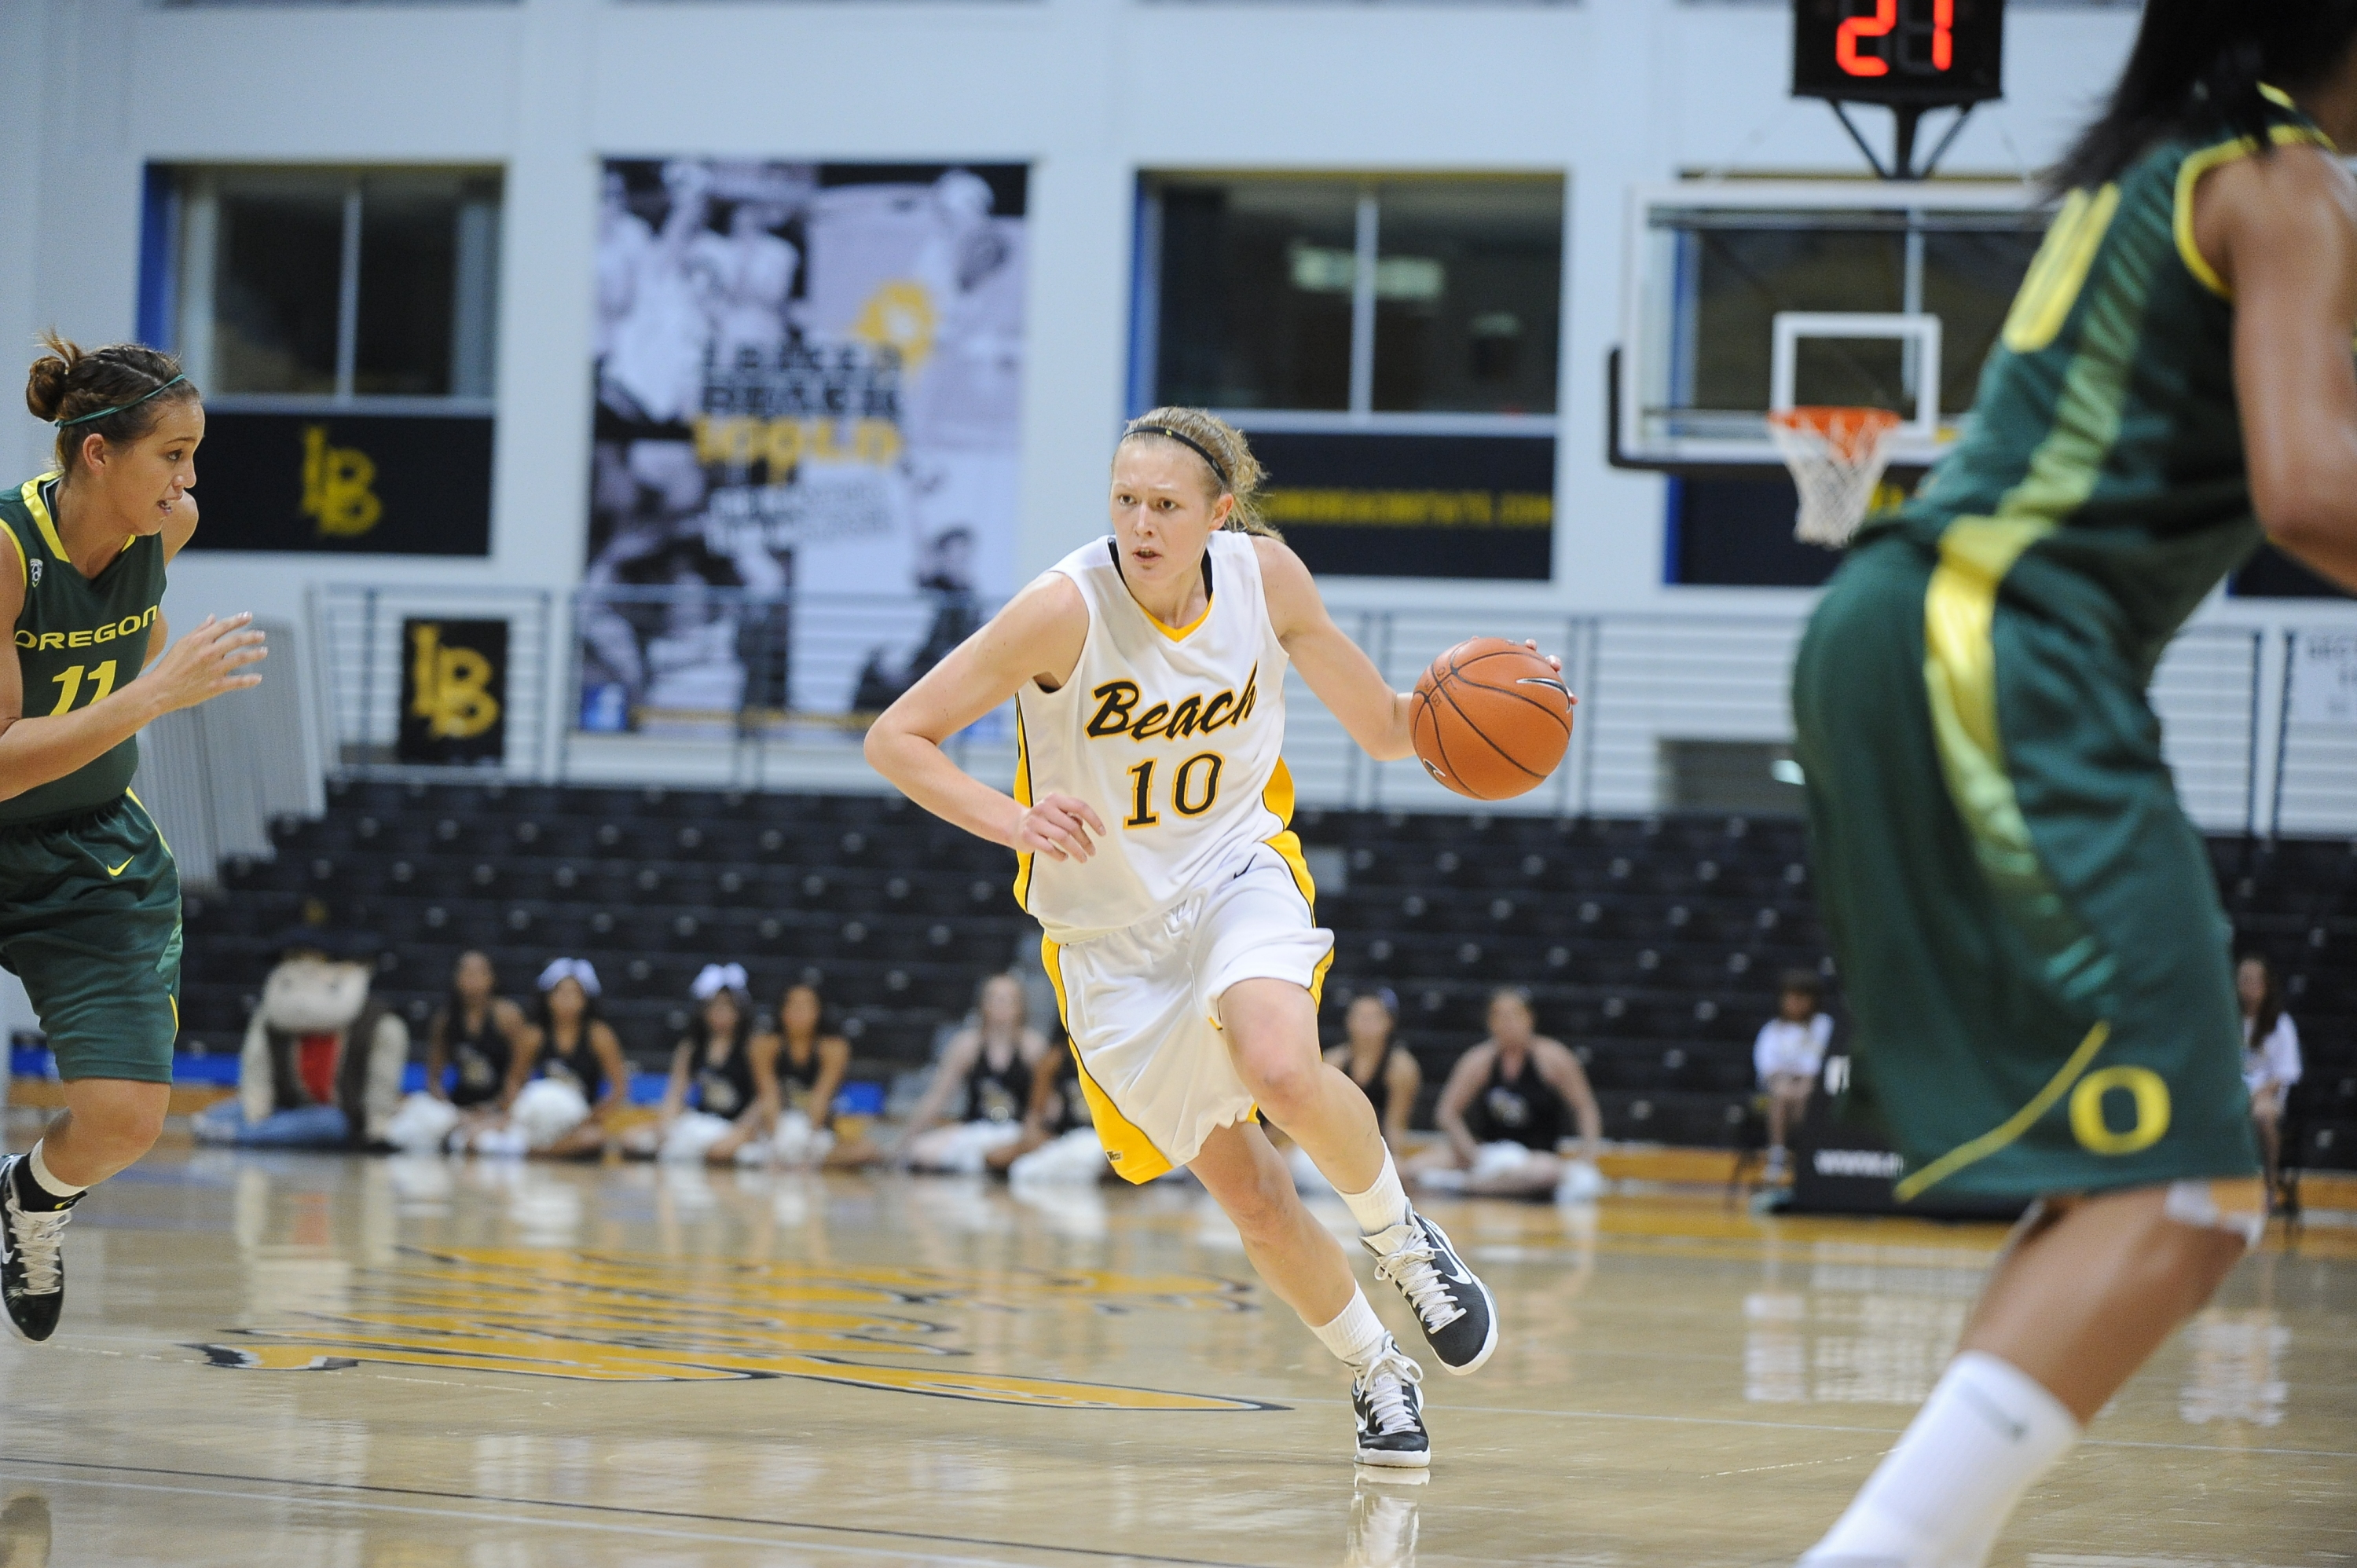 outlet store 64d4a 0dd55 Long Beach State tops Cal State Northridge, 64-50, in Big ...